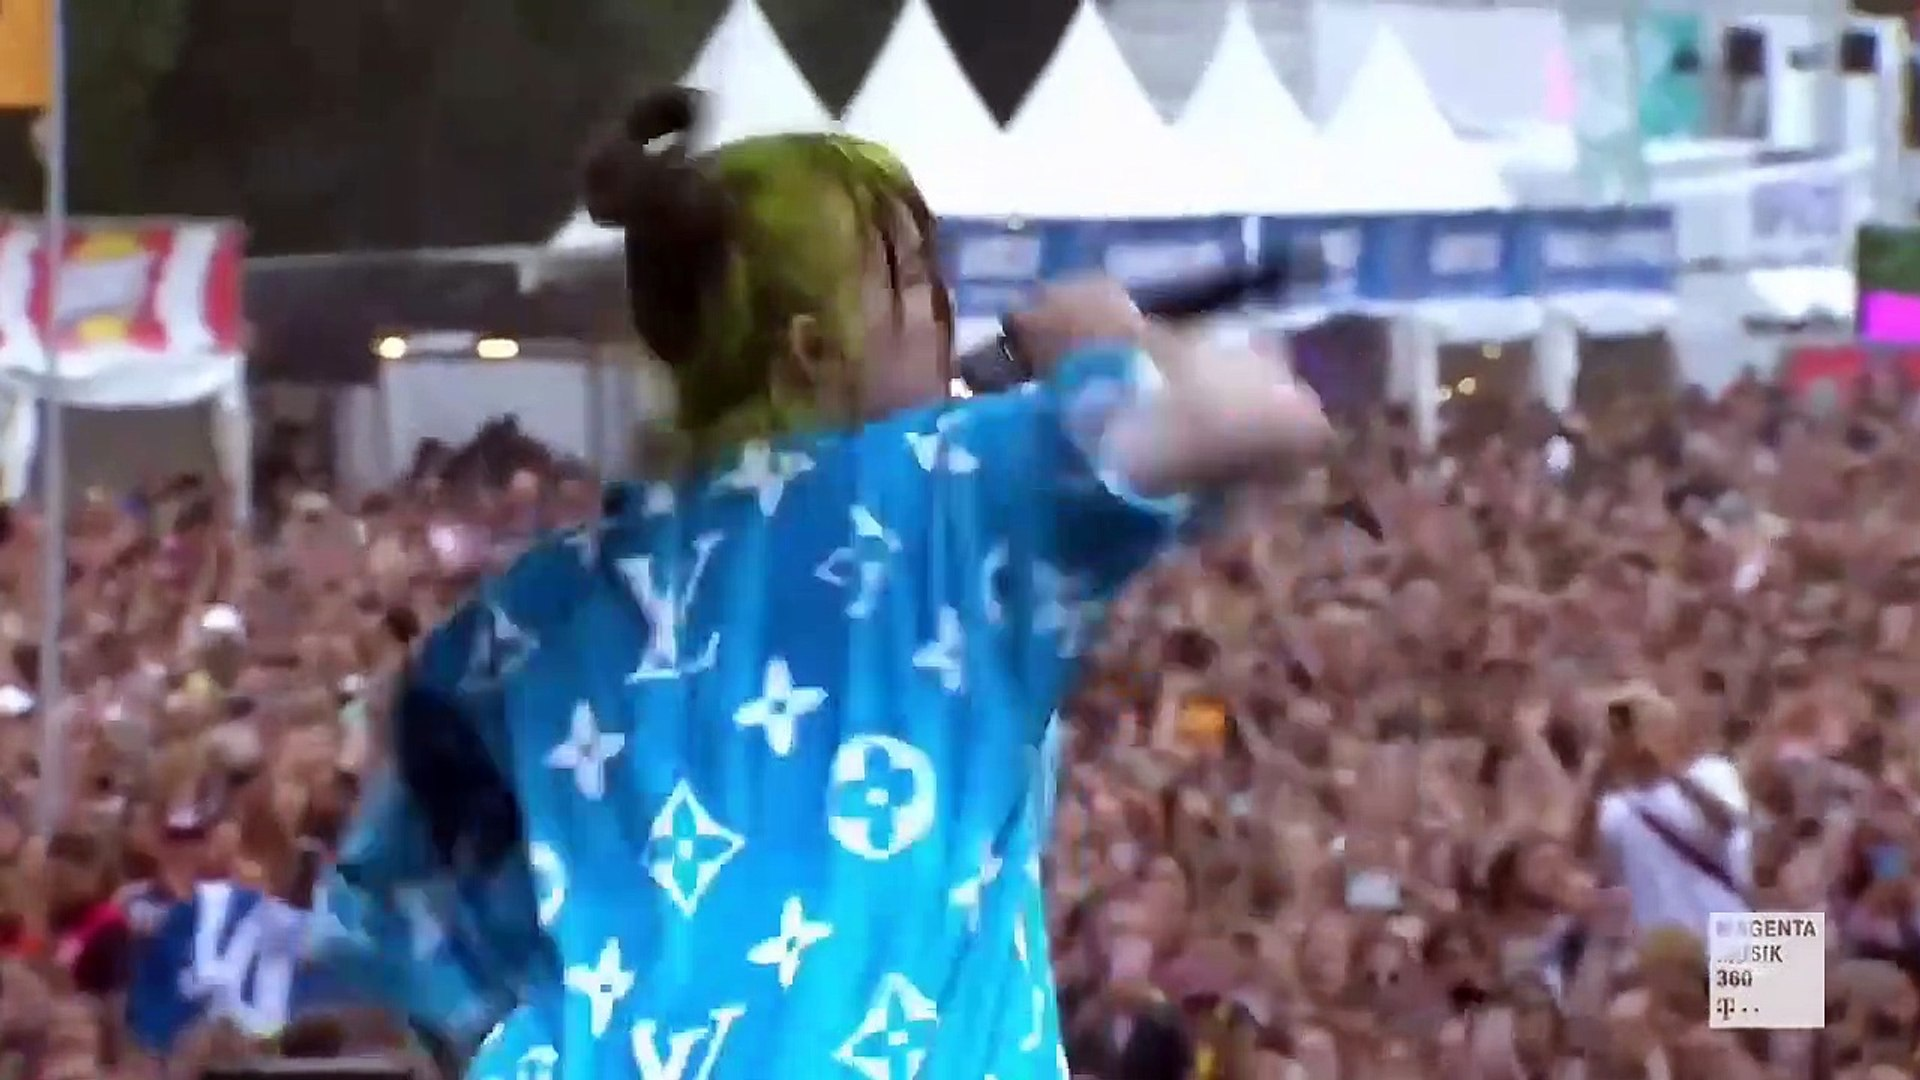 Billie Eilish - You should see me in a Crown (Lollapalooza 2019)